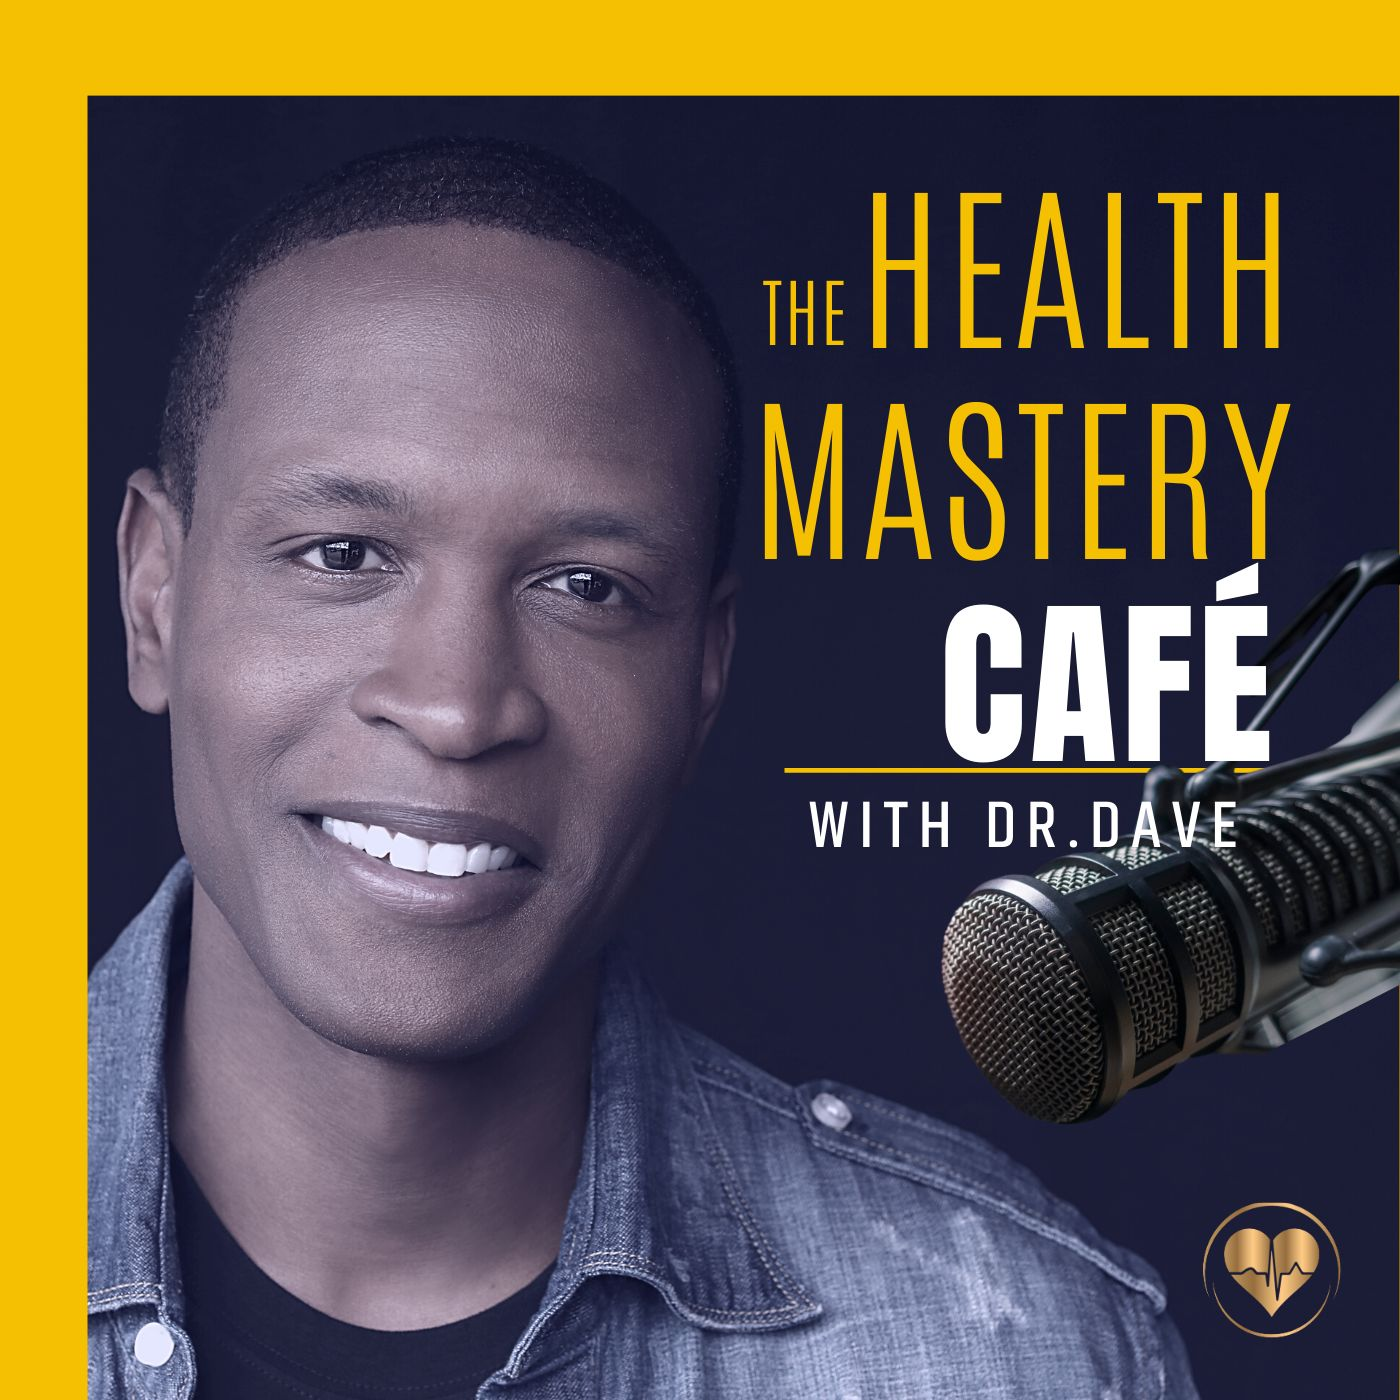 The Health Mastery Café with Dr. Dave